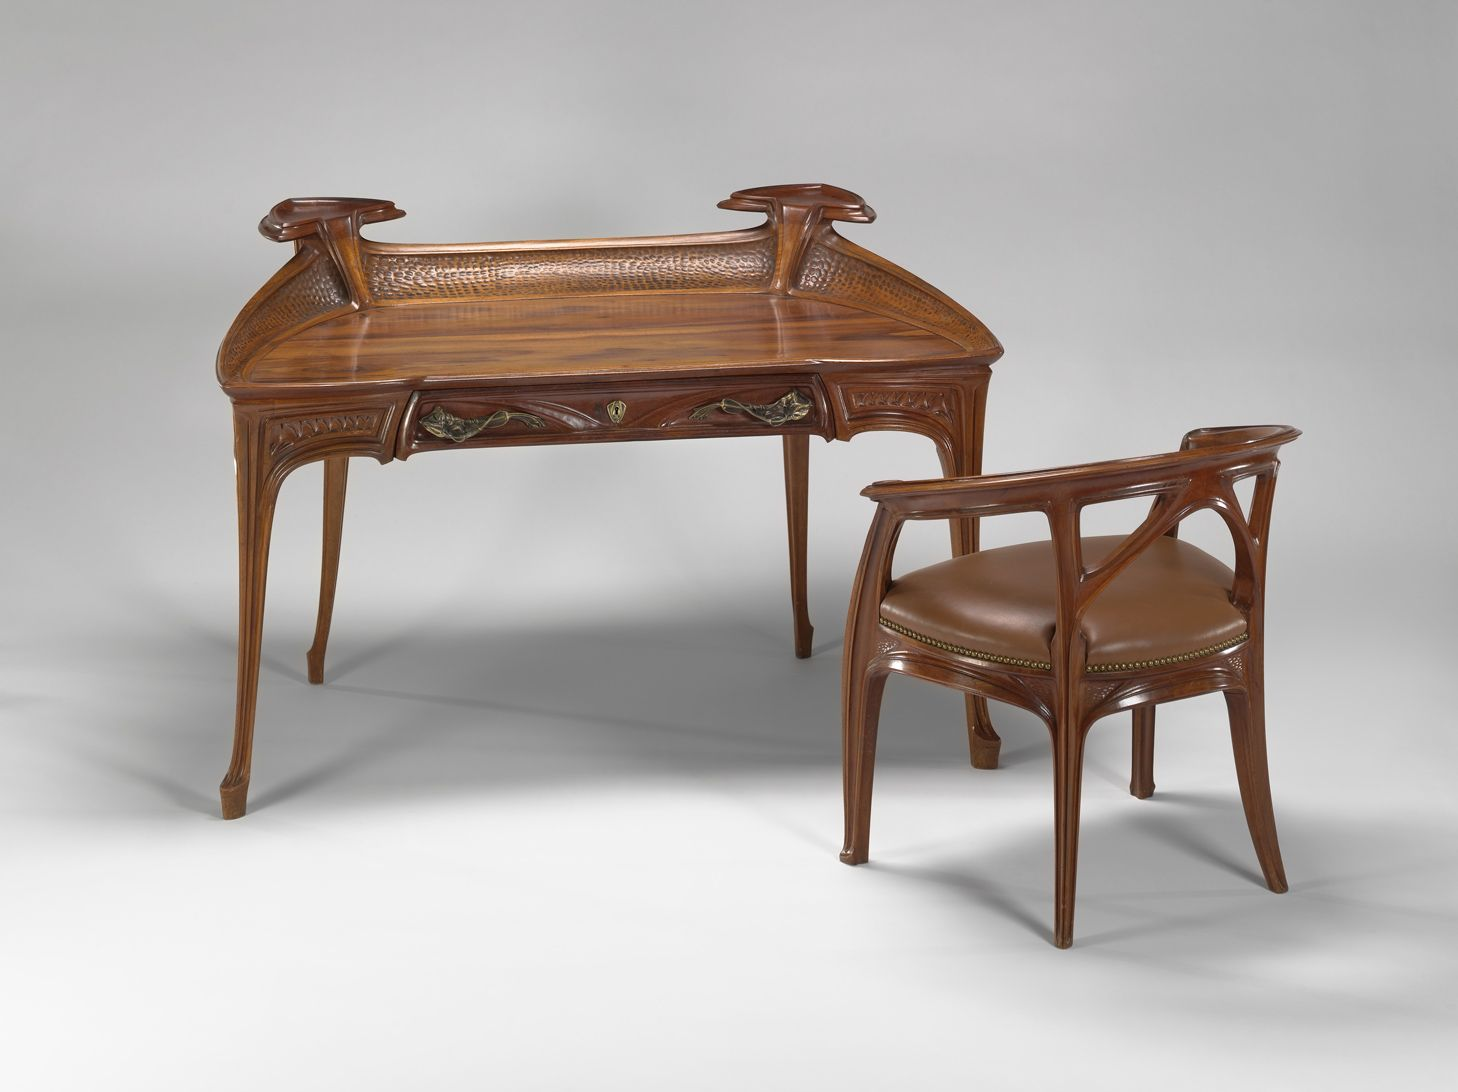 Rare original beech stained chair by eugene gaillard circa 1900 at - Vmfa Mahogany Desk And Chair By Jacques Gruber Desk And Chair Ca 1901 Jacques Gruber